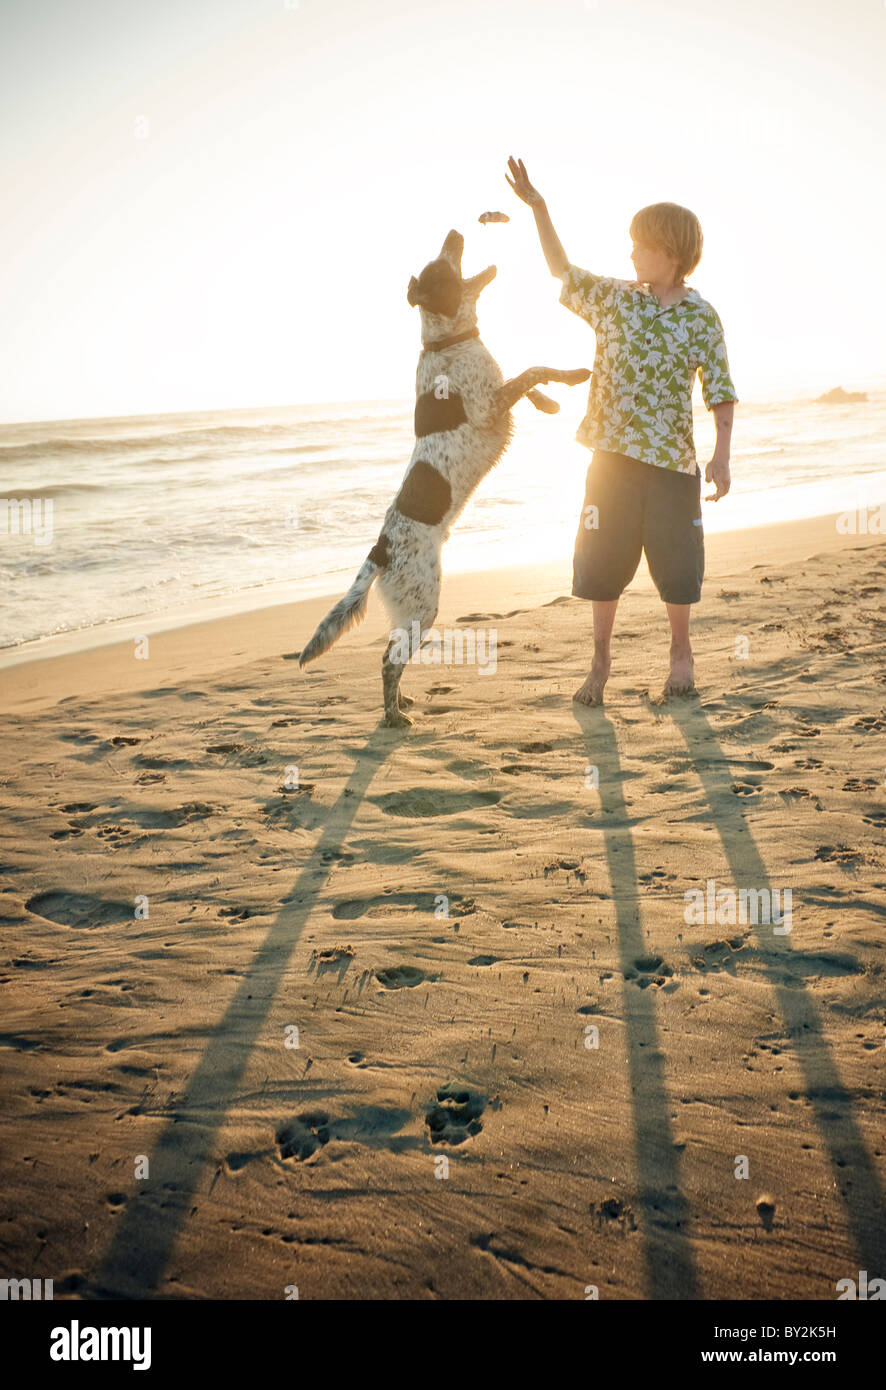 A young boy plays with his dog on a beach in Mexico. - Stock Image